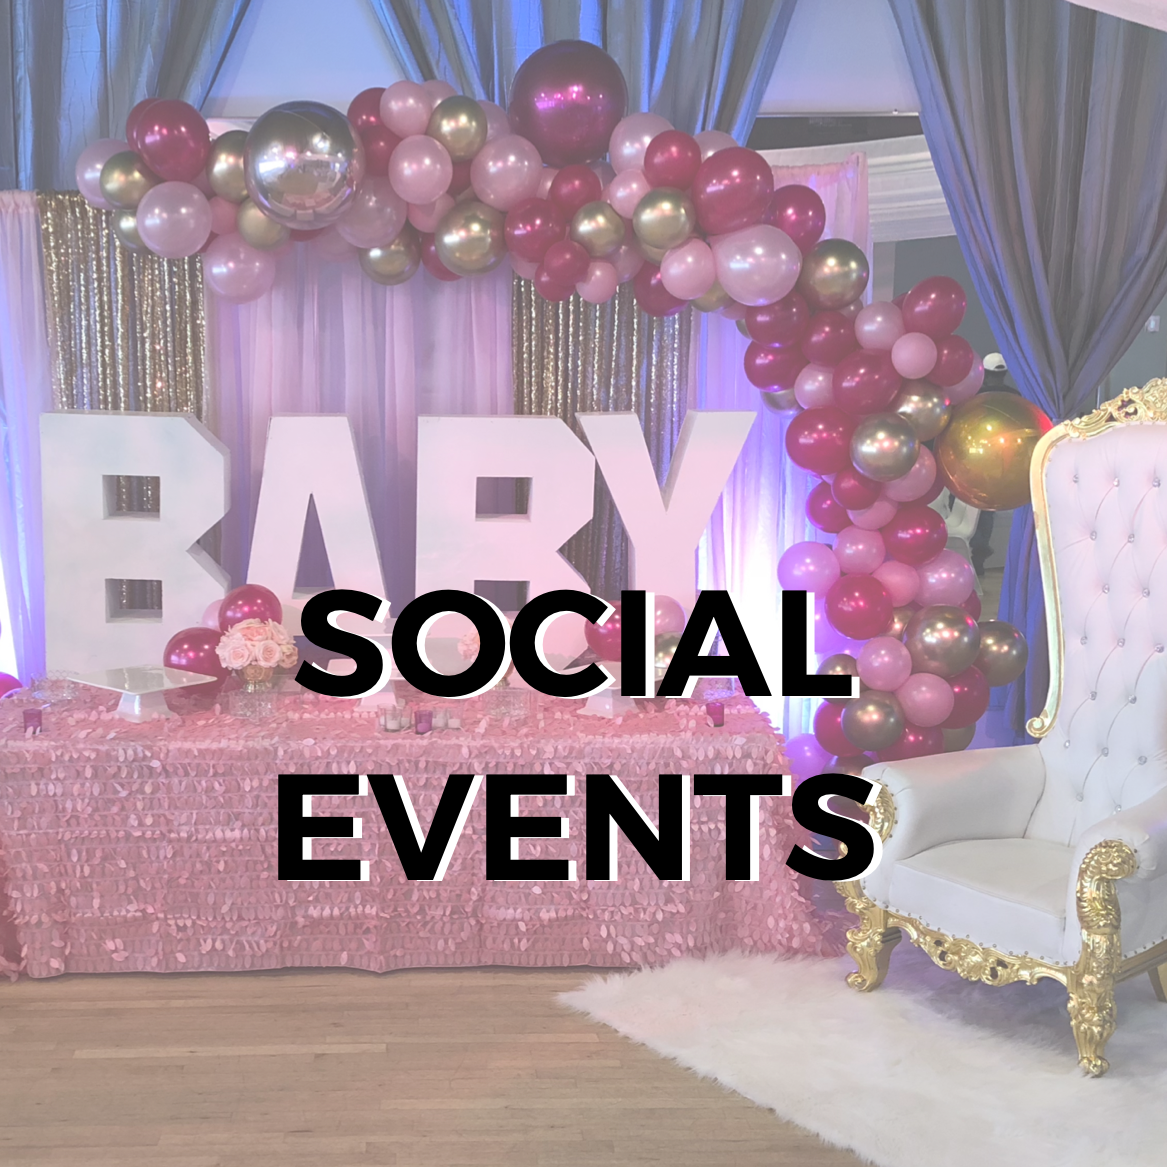 With plenty of stunning LED theatrical lighting, built-in decor, and flexible vendor policies - our event spaces are perfectly equipped for Quinceaneras, Graduations, Birthday Parties, Baby Showers and more.   SEE MORE DETAILS >>